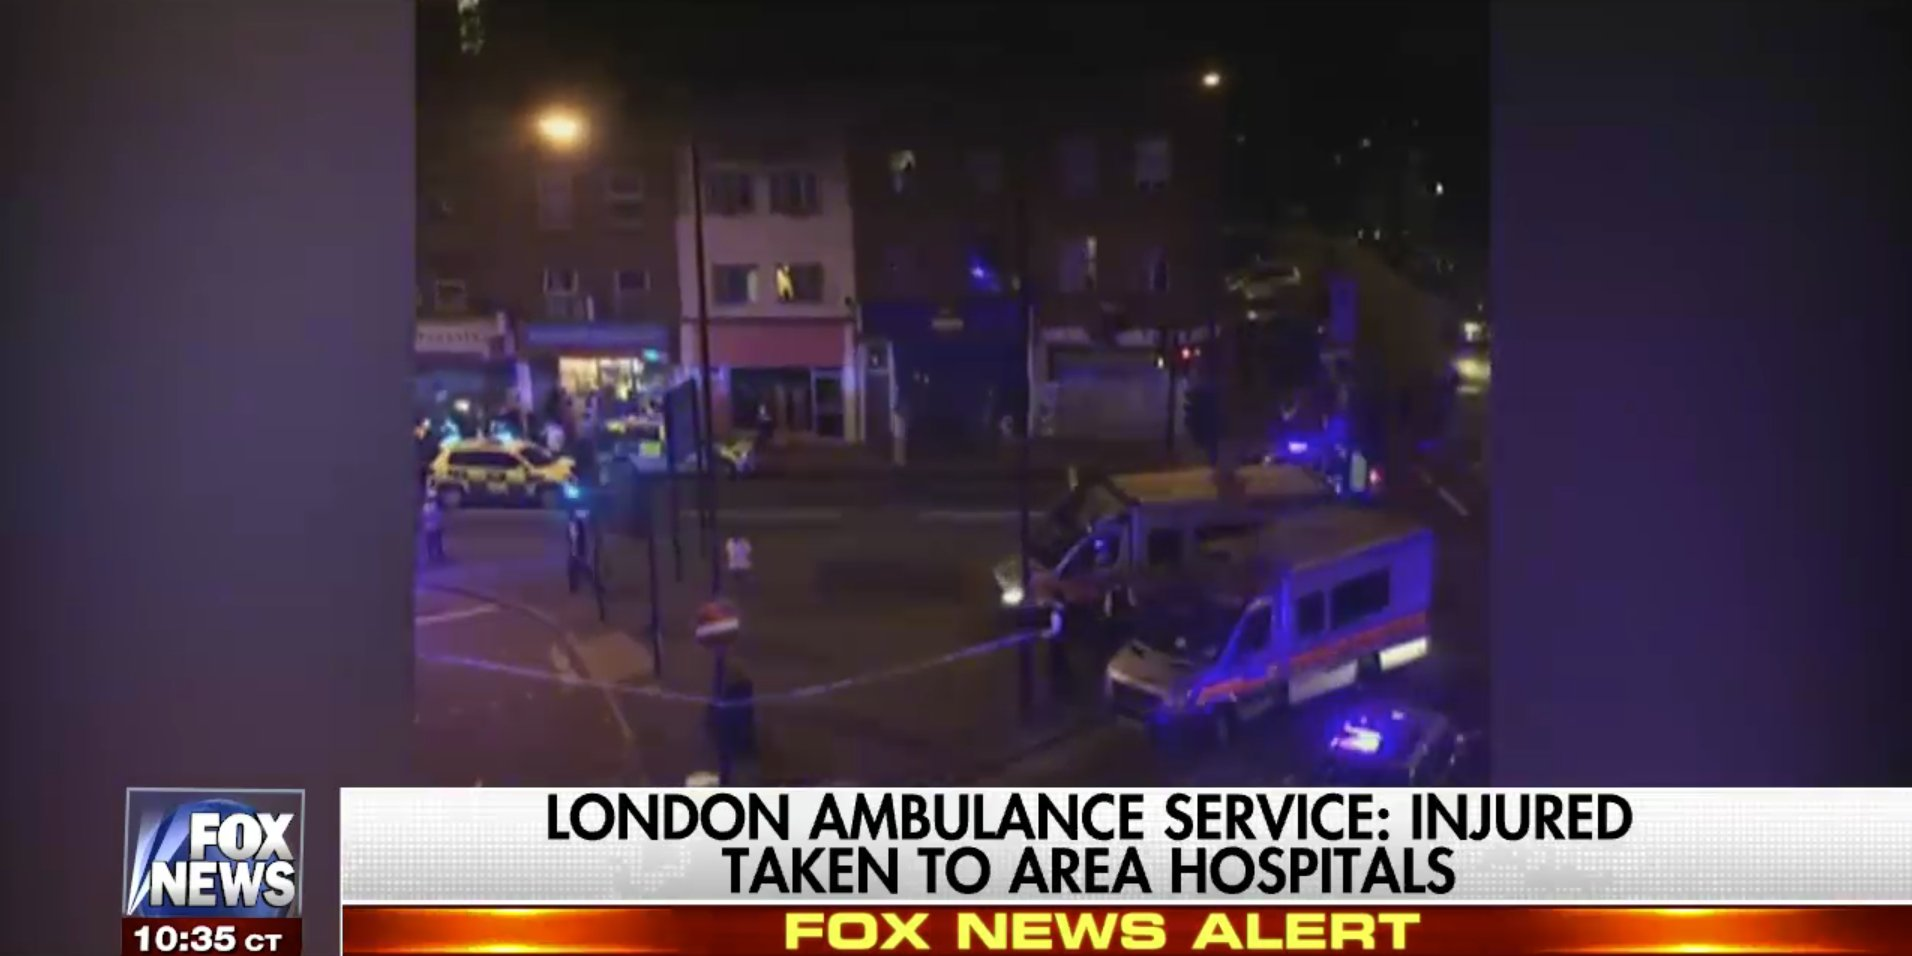 Van rams worshippers outside London mosque. Watch complete coverage now on Fox News Channel. https://t.co/fdnlkMMFZ9